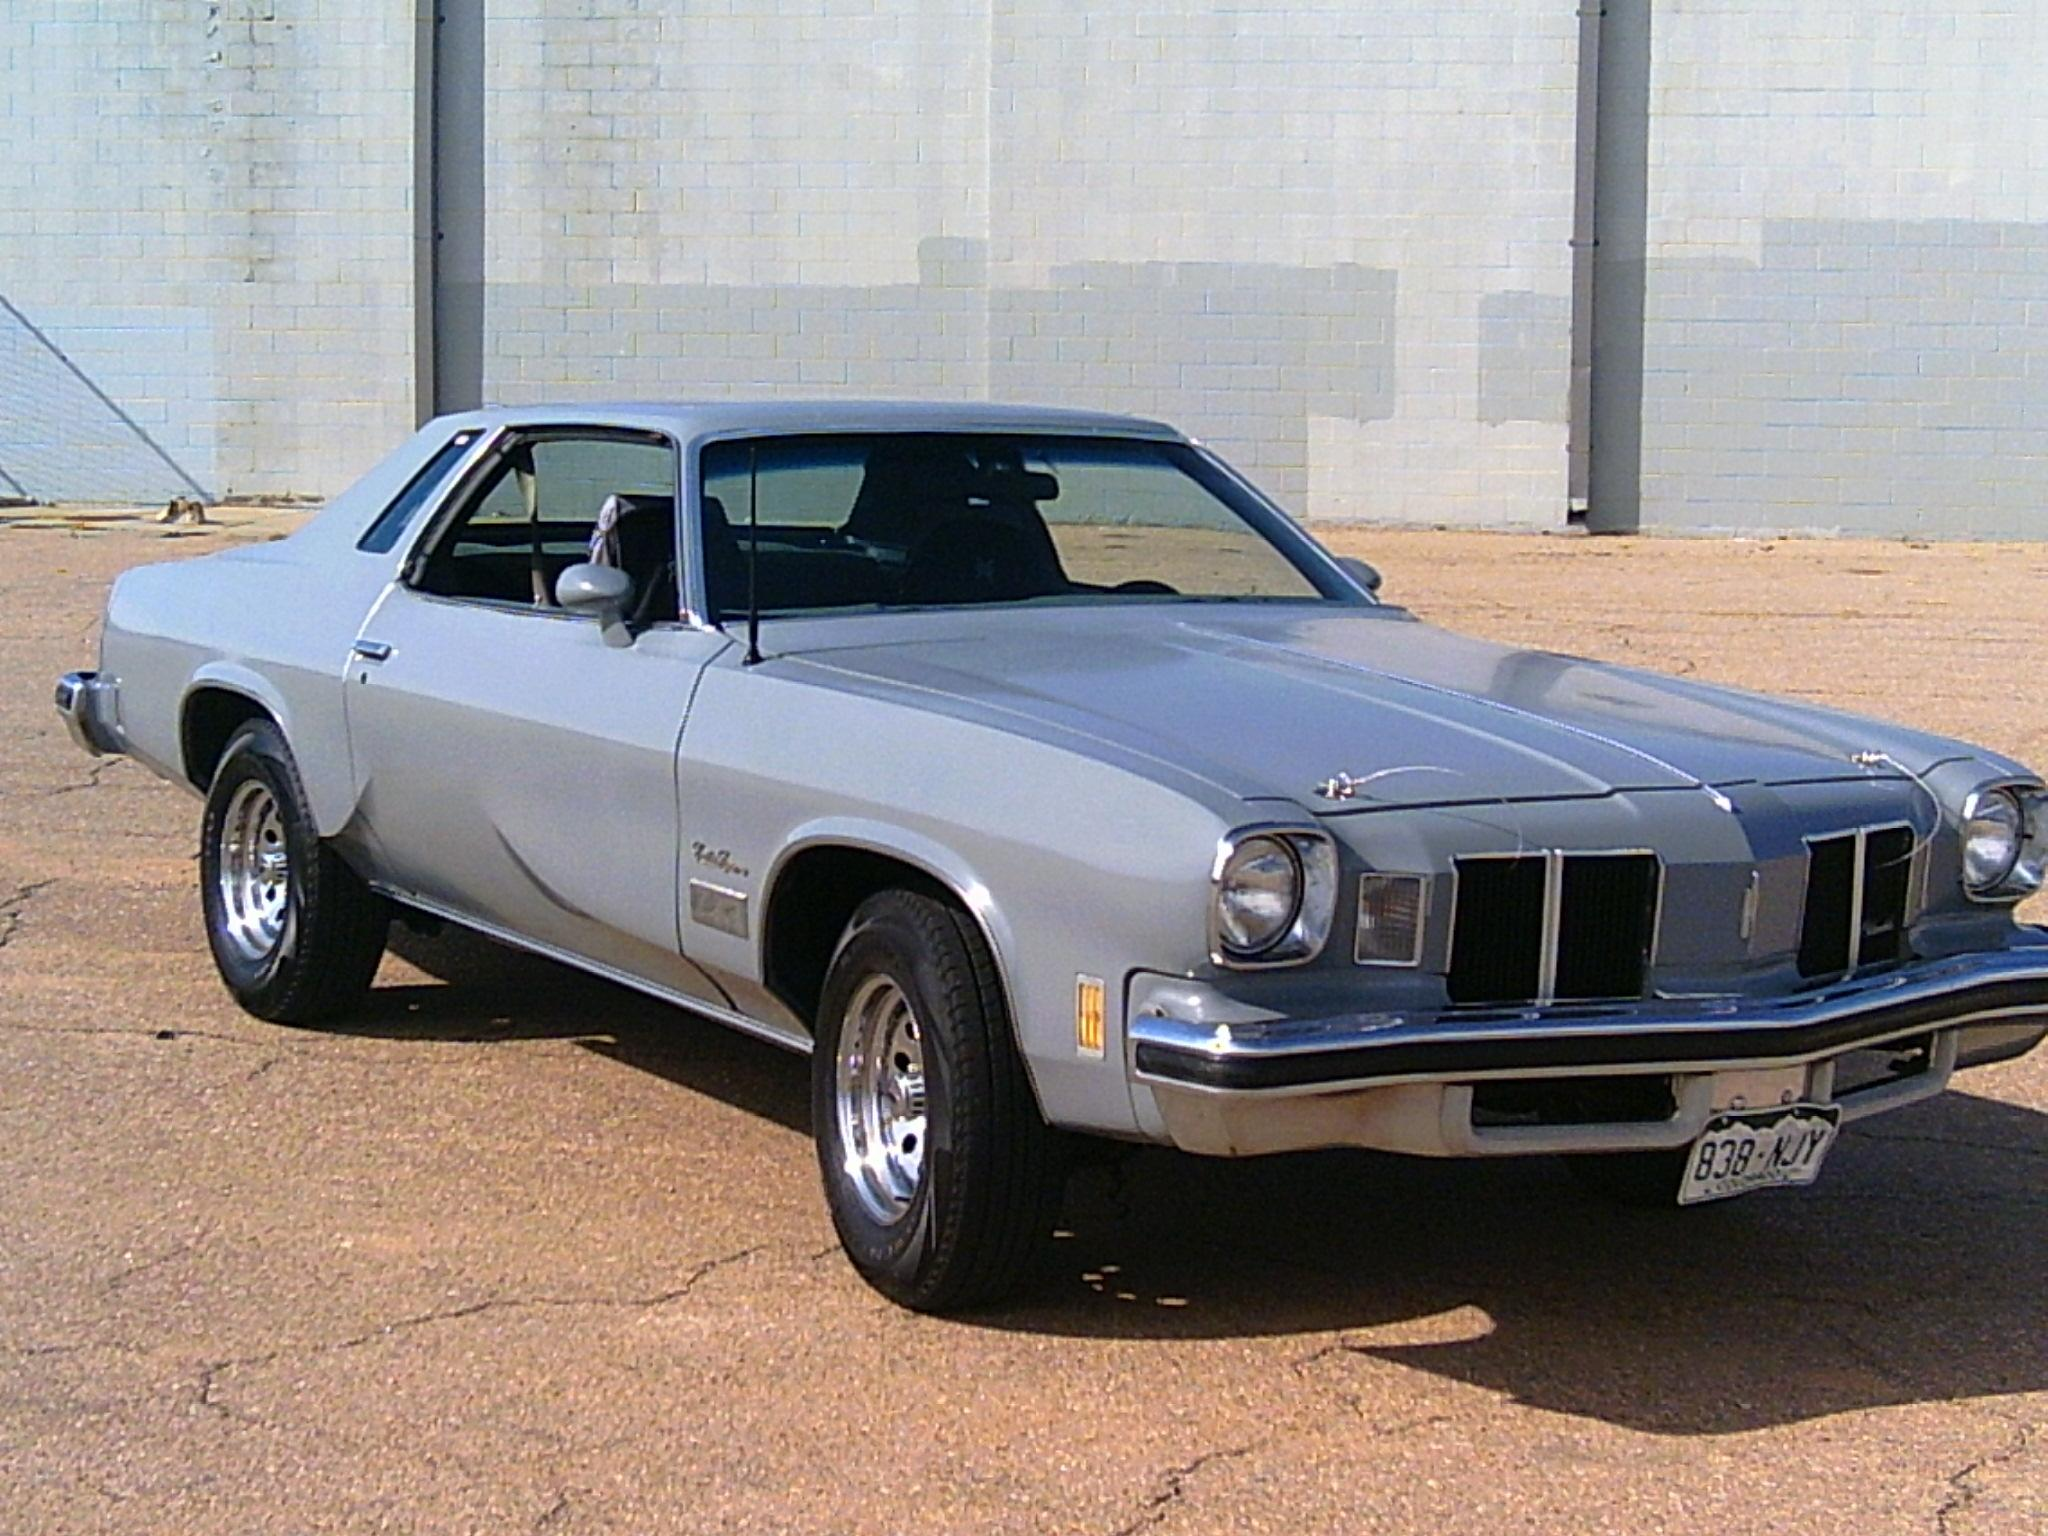 Rocketman1974 1974 oldsmobile cutlass supreme specs for 74 cutlass salon